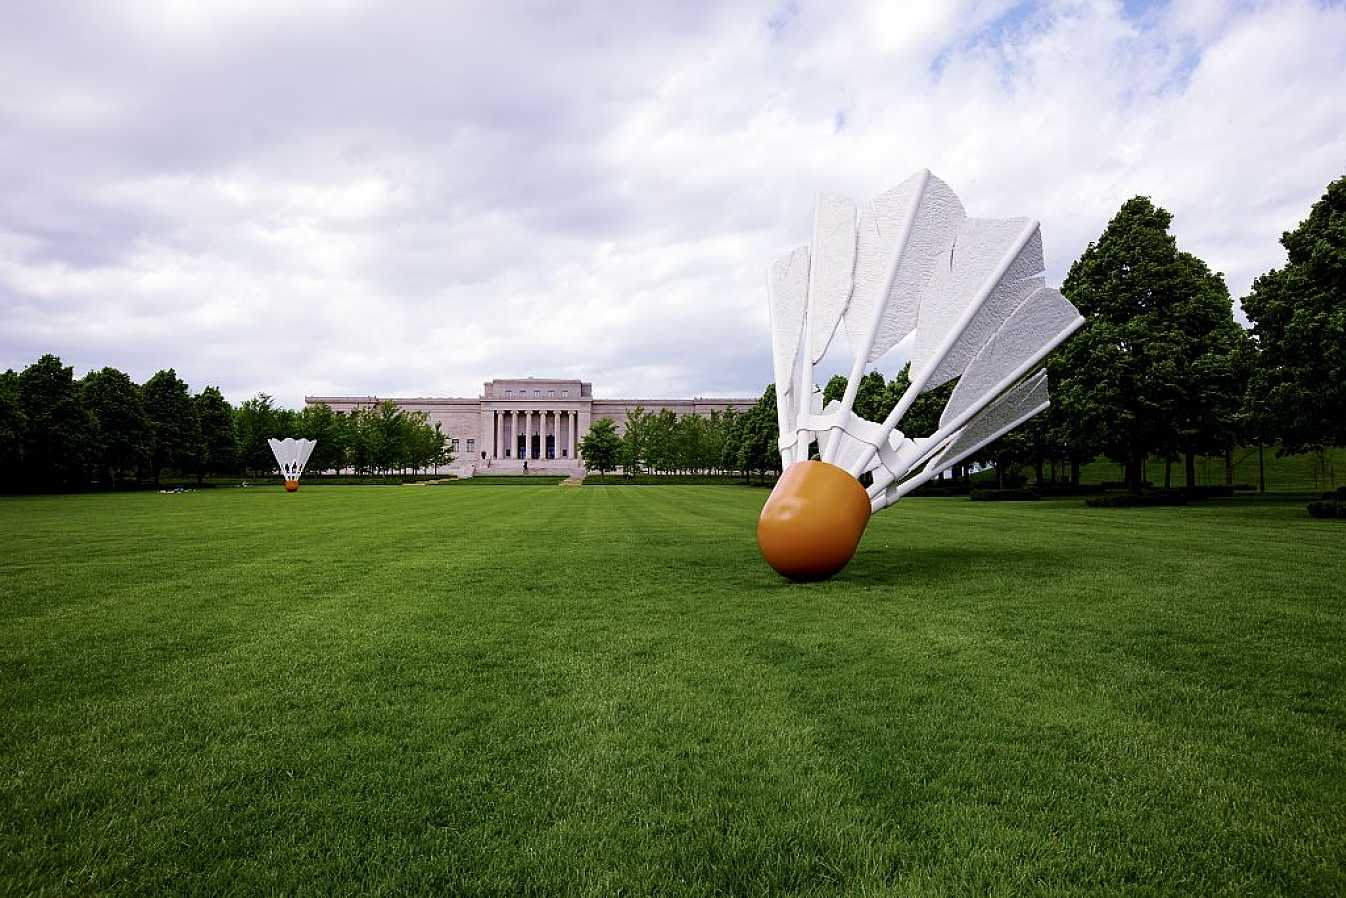 Nelson Atkins Art Museum, Kansas City, Missouri